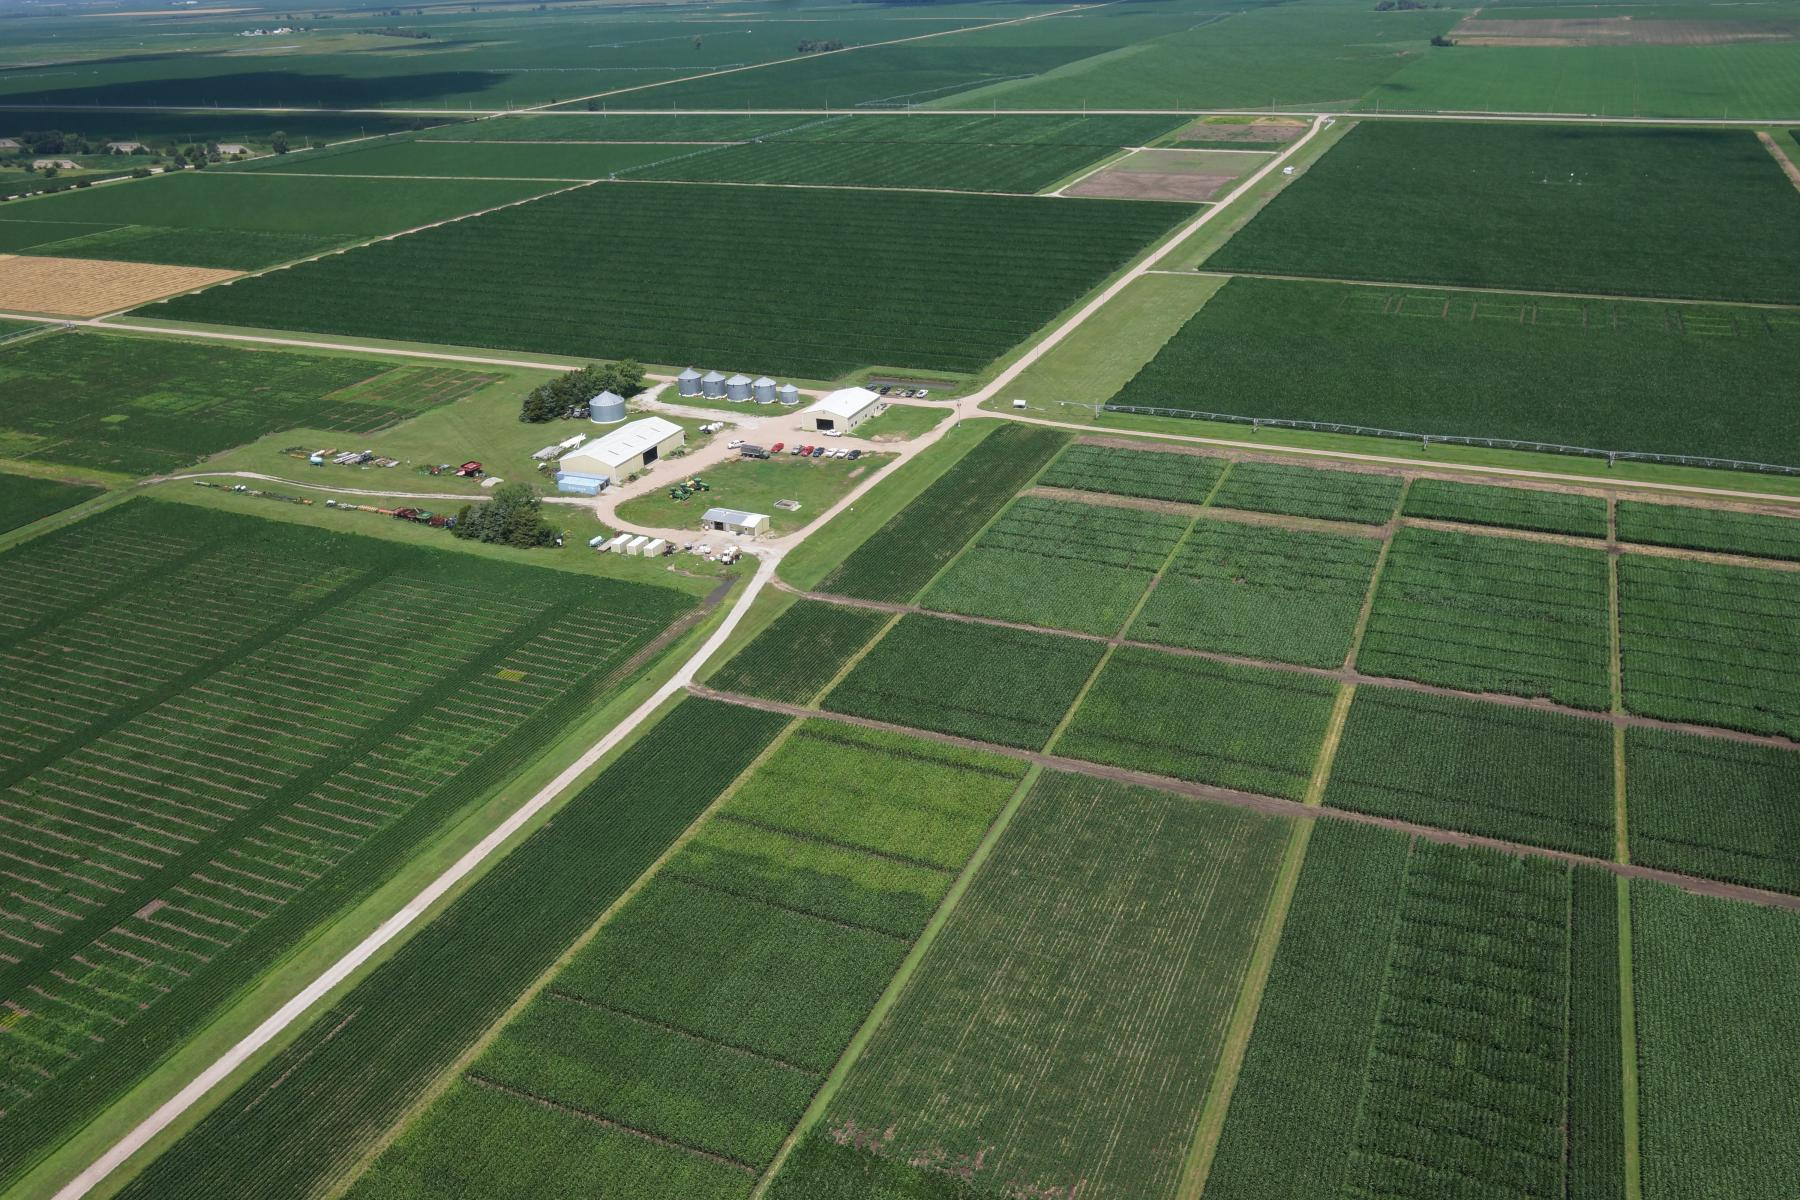 Soil fertility, weed management and crop variety research trials. SCAL research facilities are located near the center of the photograph.